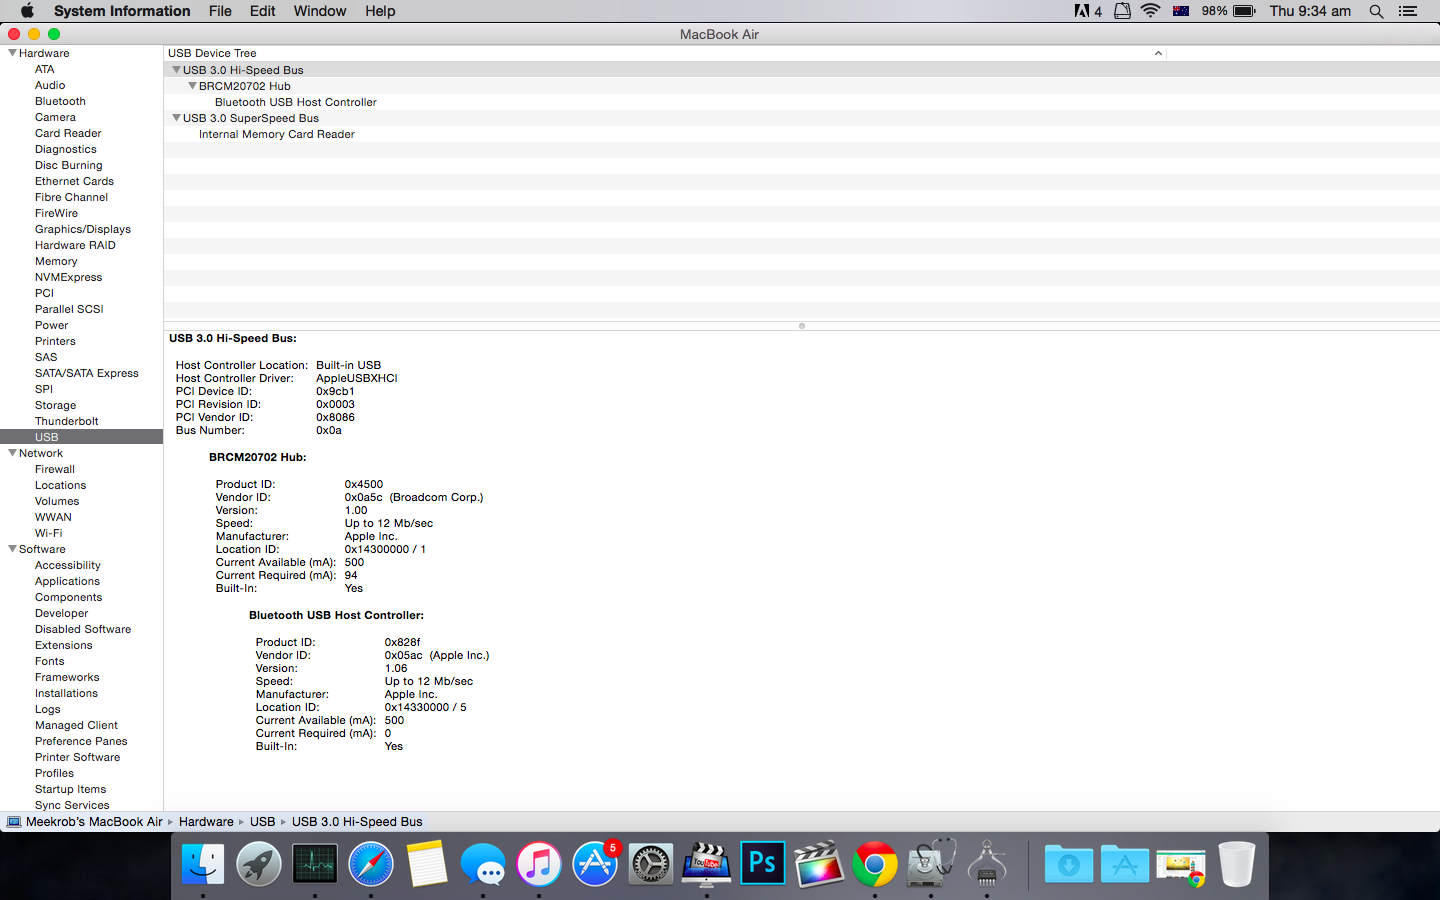 Seagate External HDD won't show up  - Apple Community